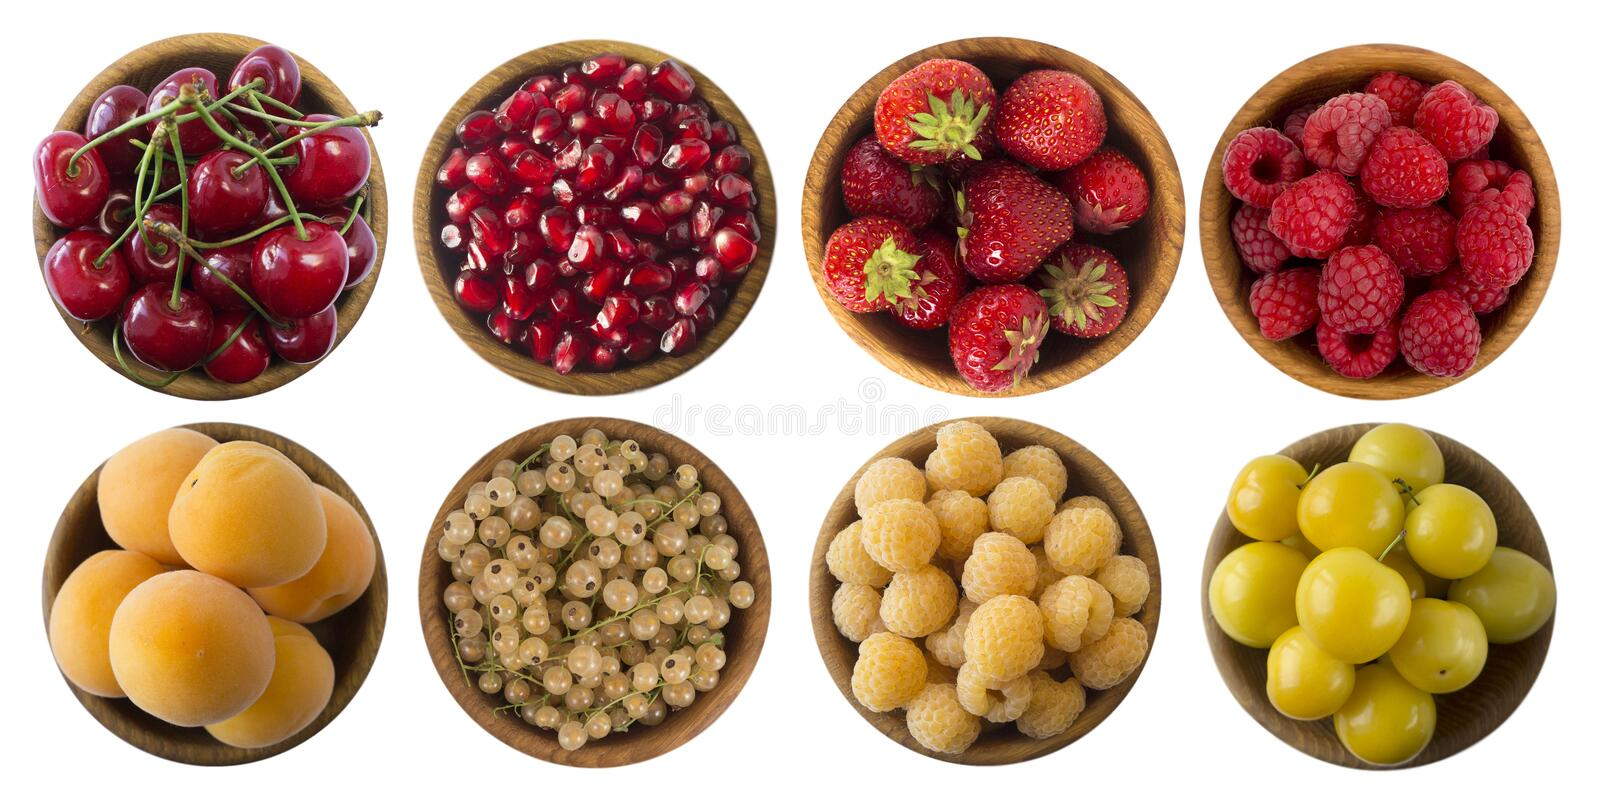 Yellow and red berries isolated on white background stock photo